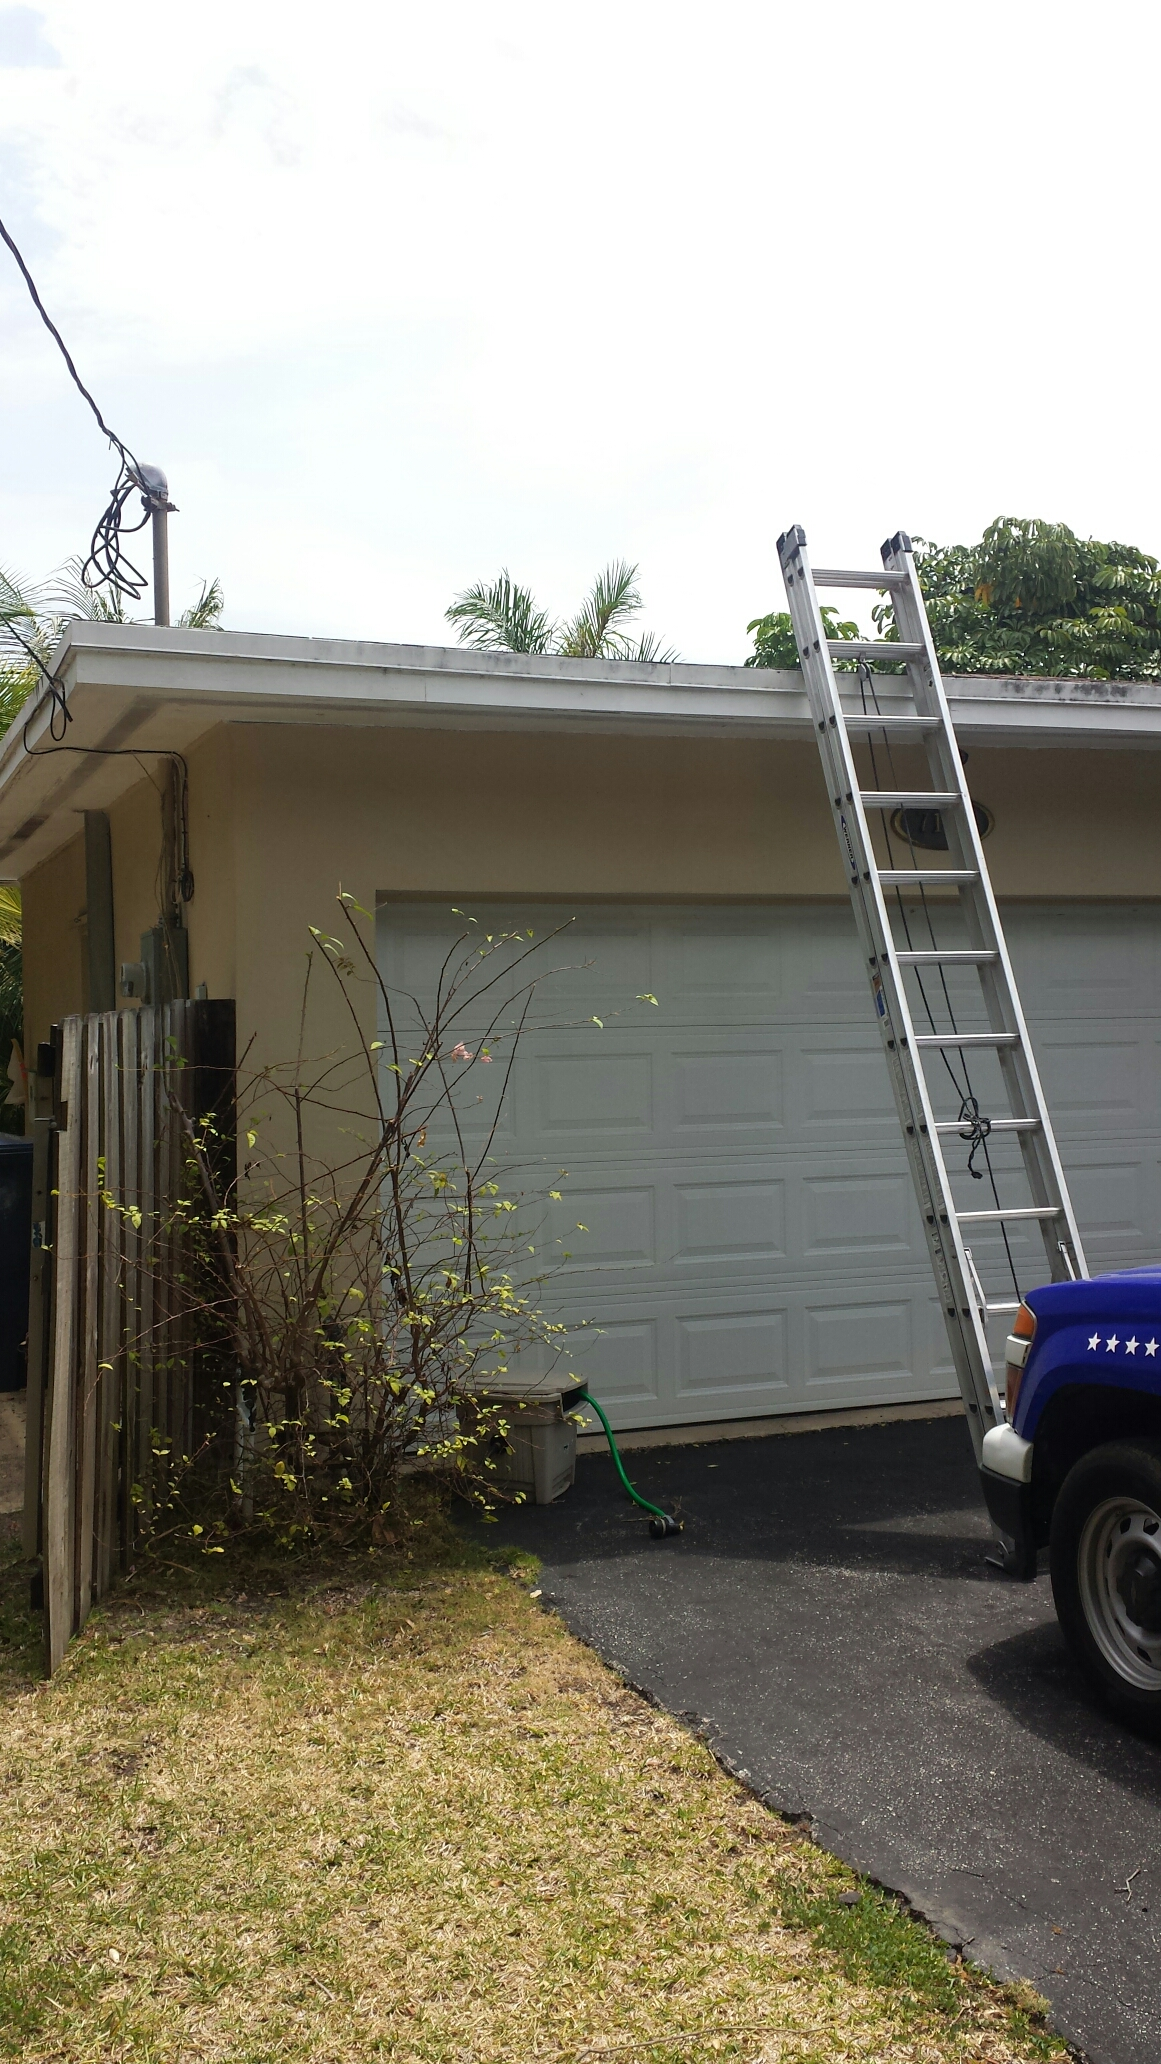 South Miami, FL - Flat reroof estimate at Miami